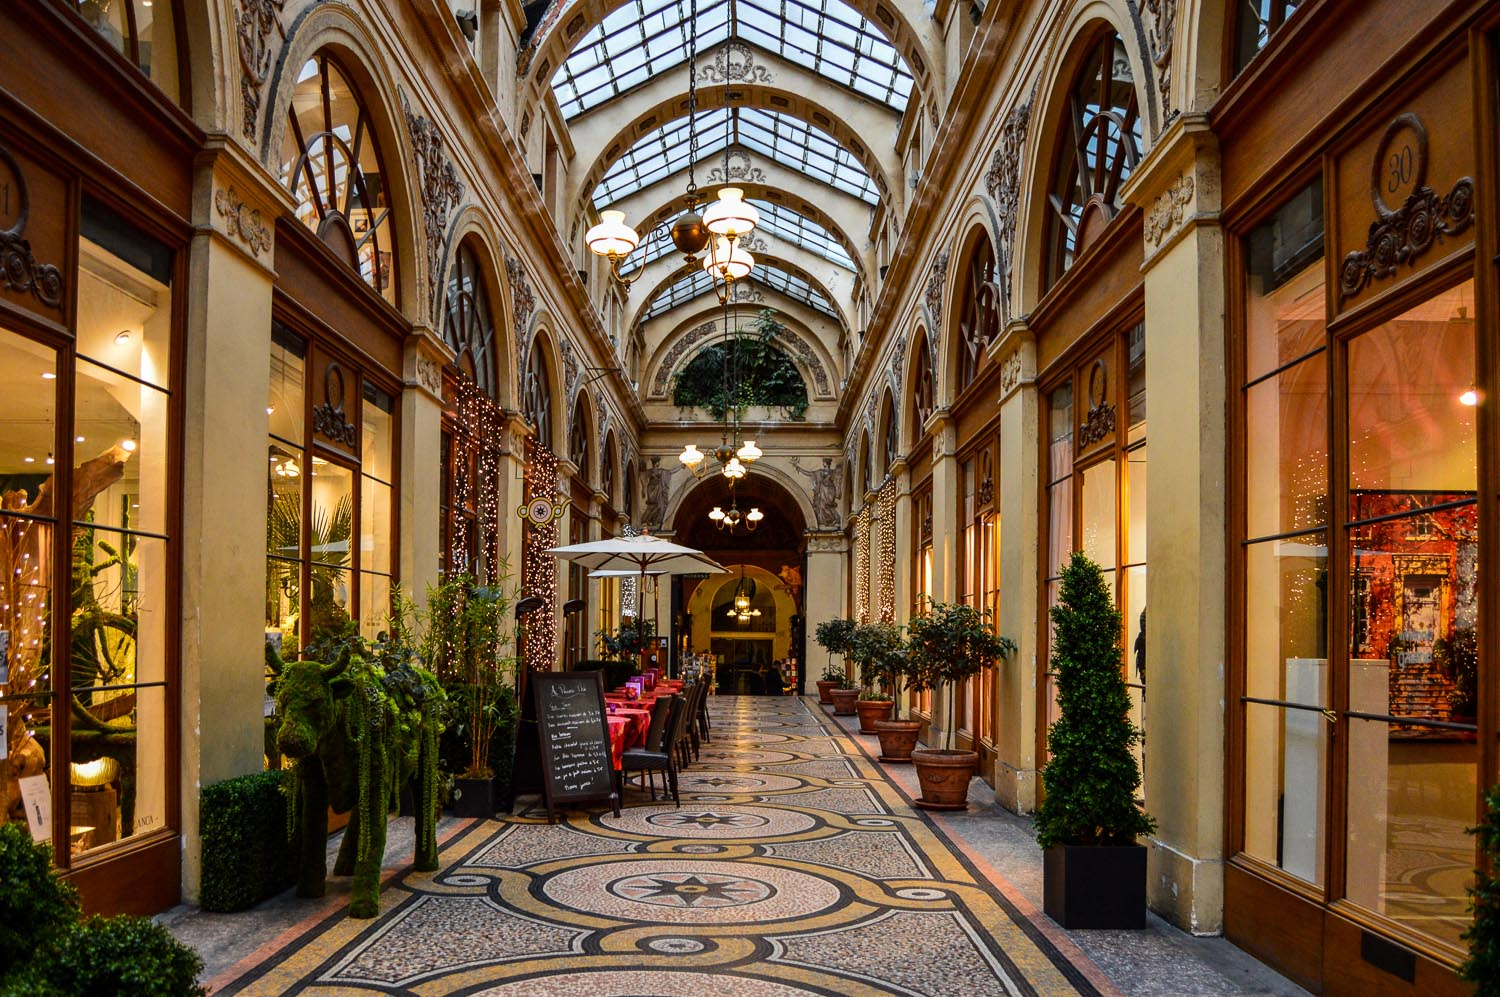 Hôtel Drouot Paris, Galerie Vivienne - Paradise Found Around